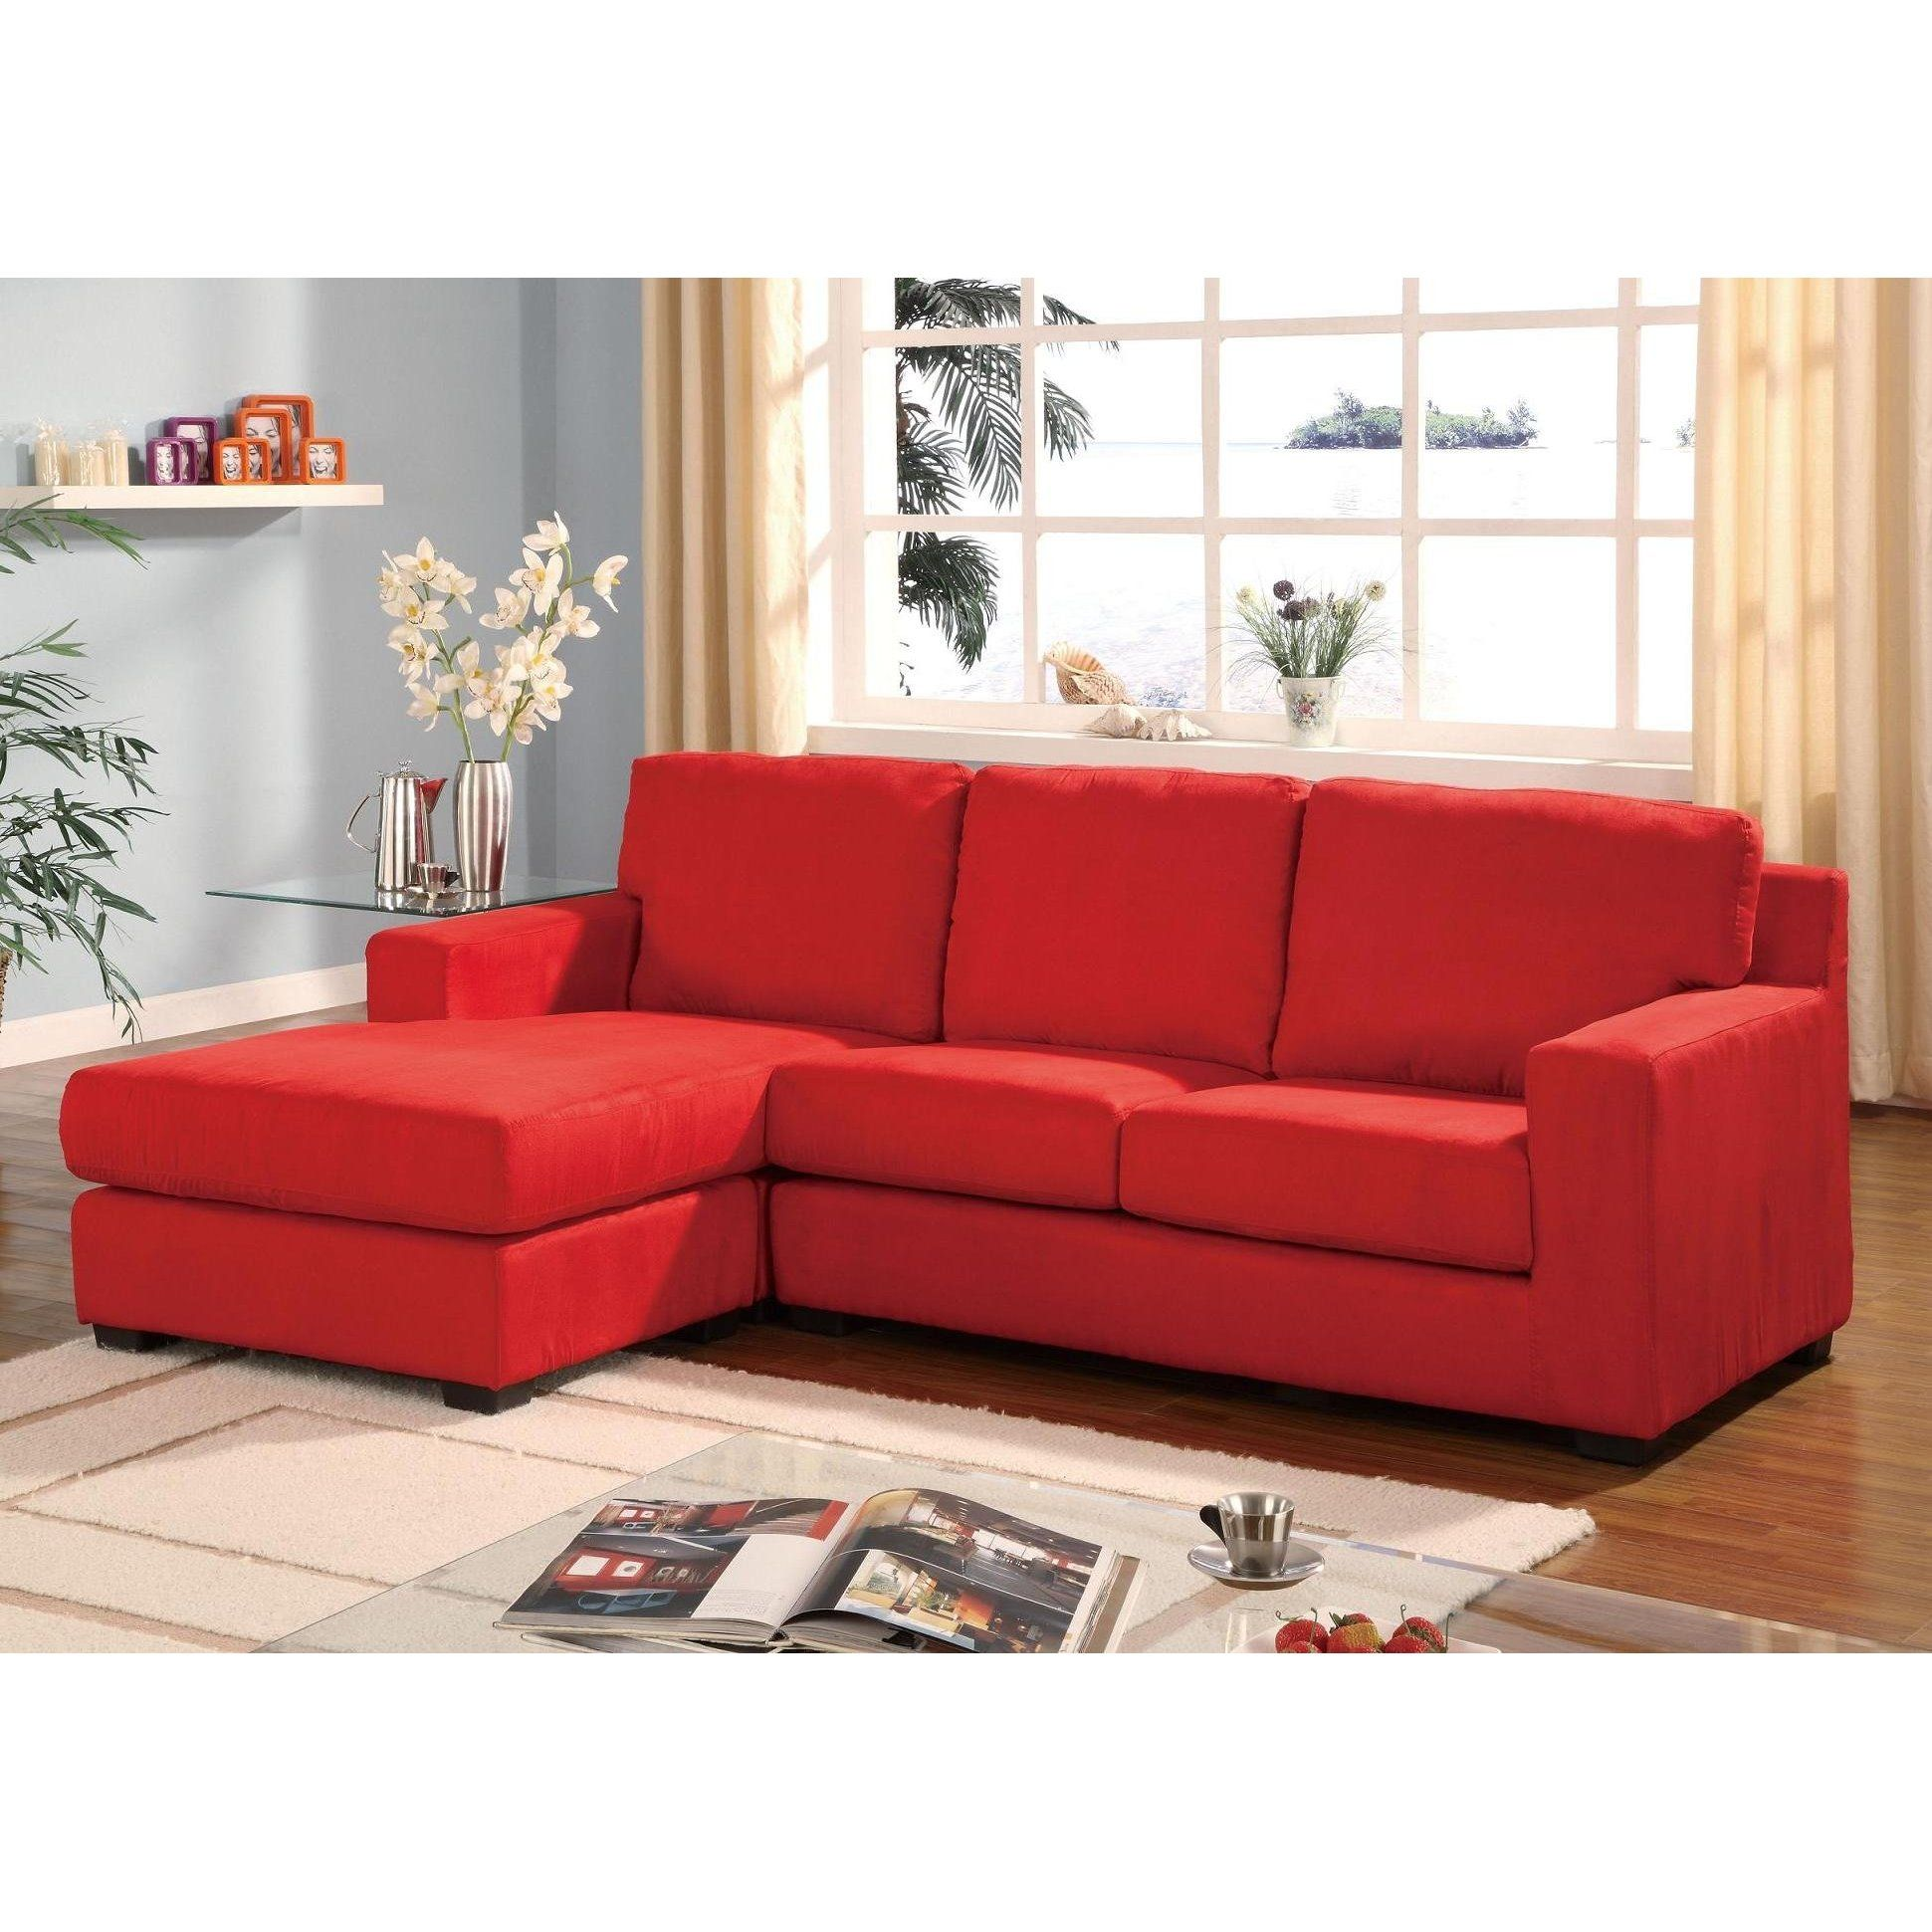 Red microfiber multifunction reversible sectional sofa for Microfiber sectional sofa